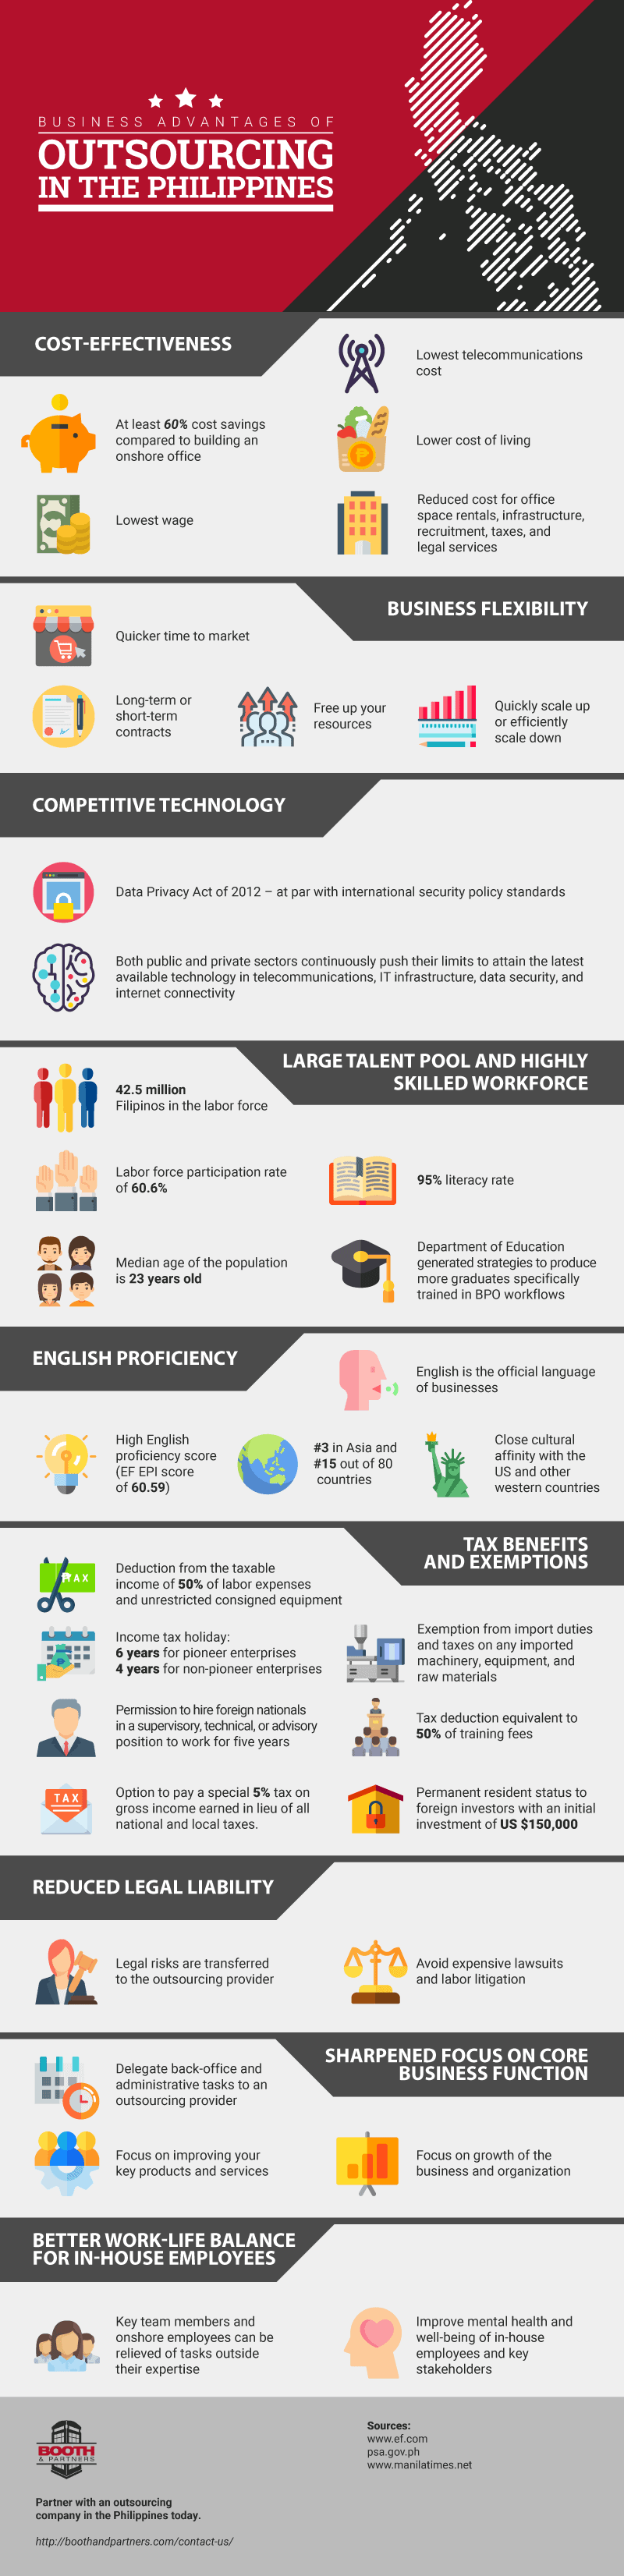 Business Advantages of Outsourcing in the Philippines-infographic